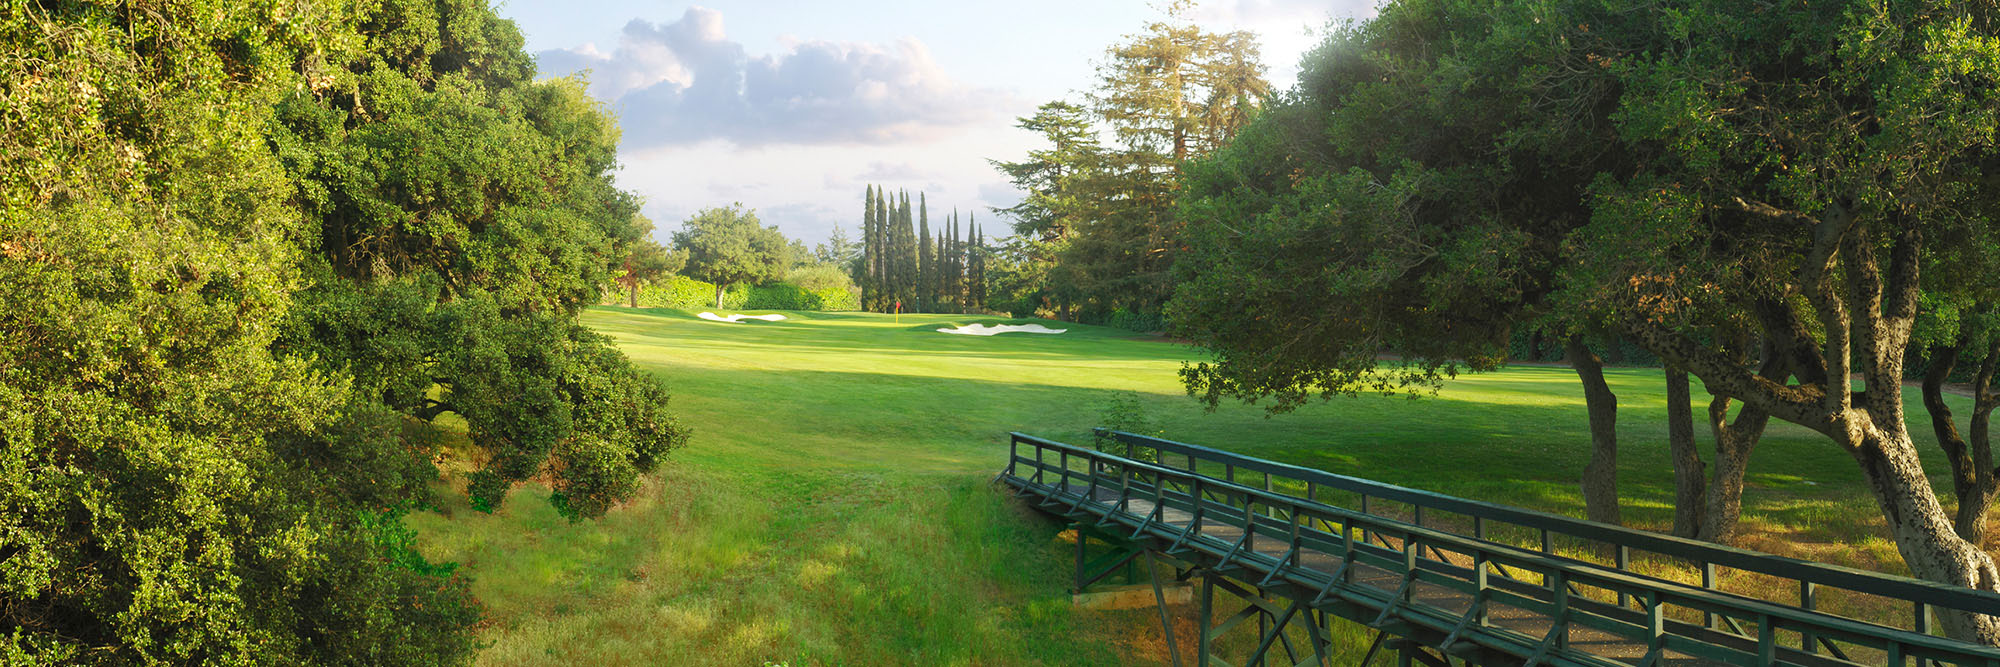 Golf Course Image - San Jose Country Club No. 17